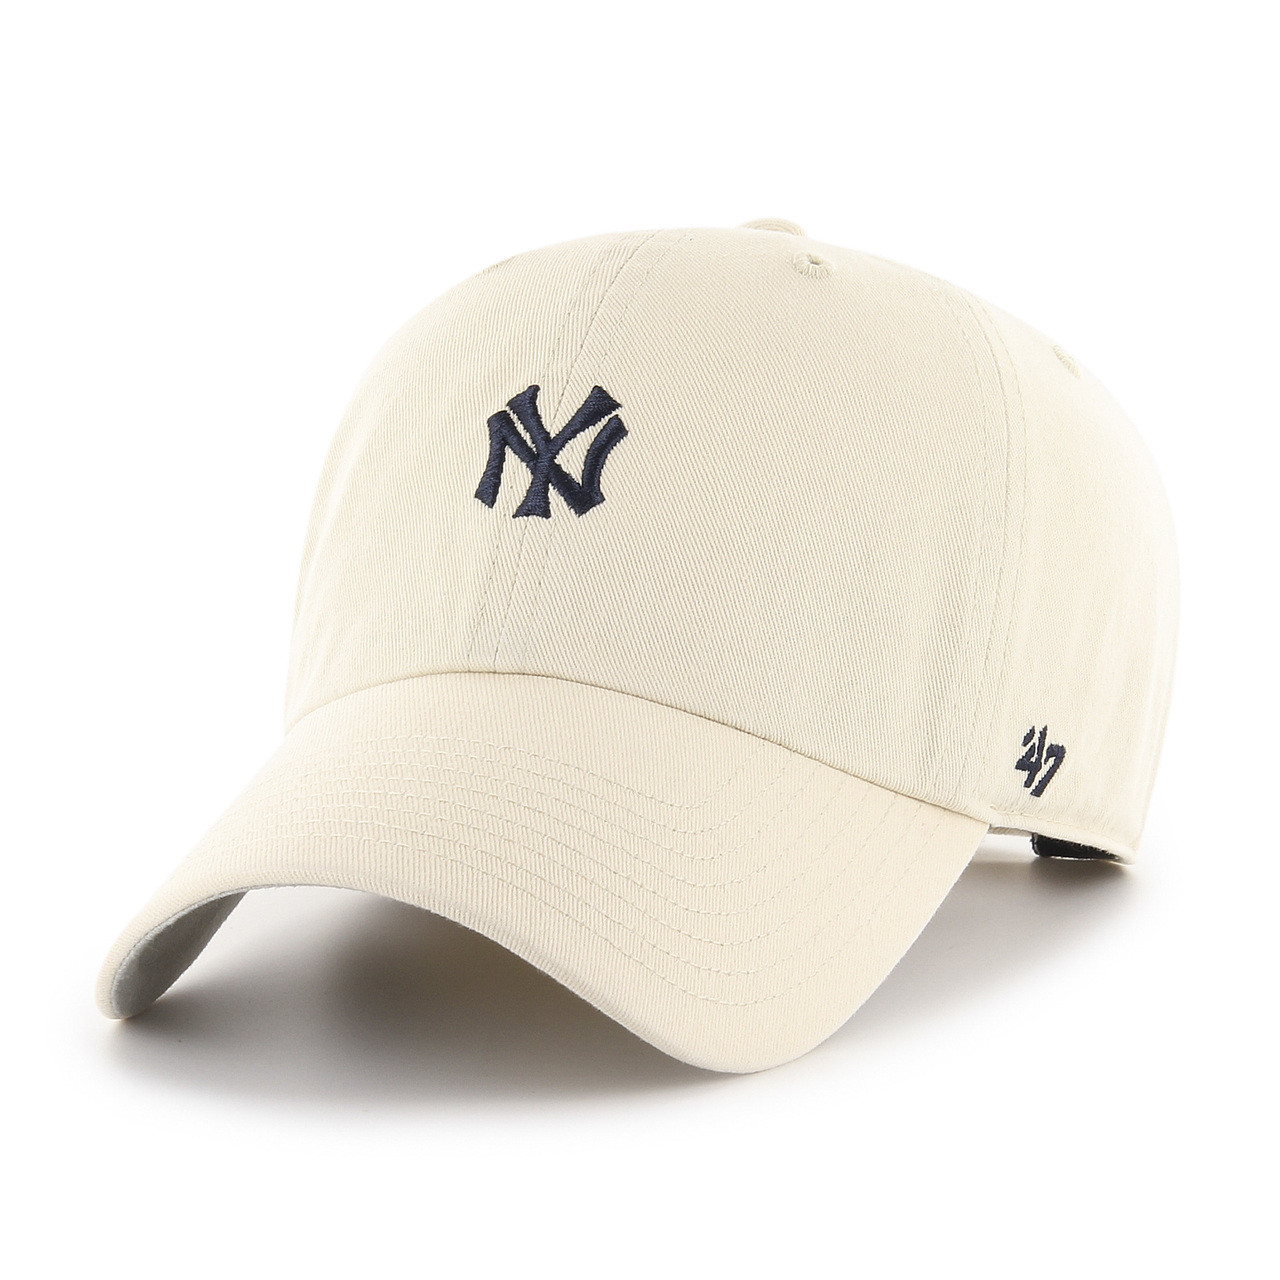 c5f4a1b4fc6 Details about  47 New York Yankees Clean Up Base Runner Cap Natural.